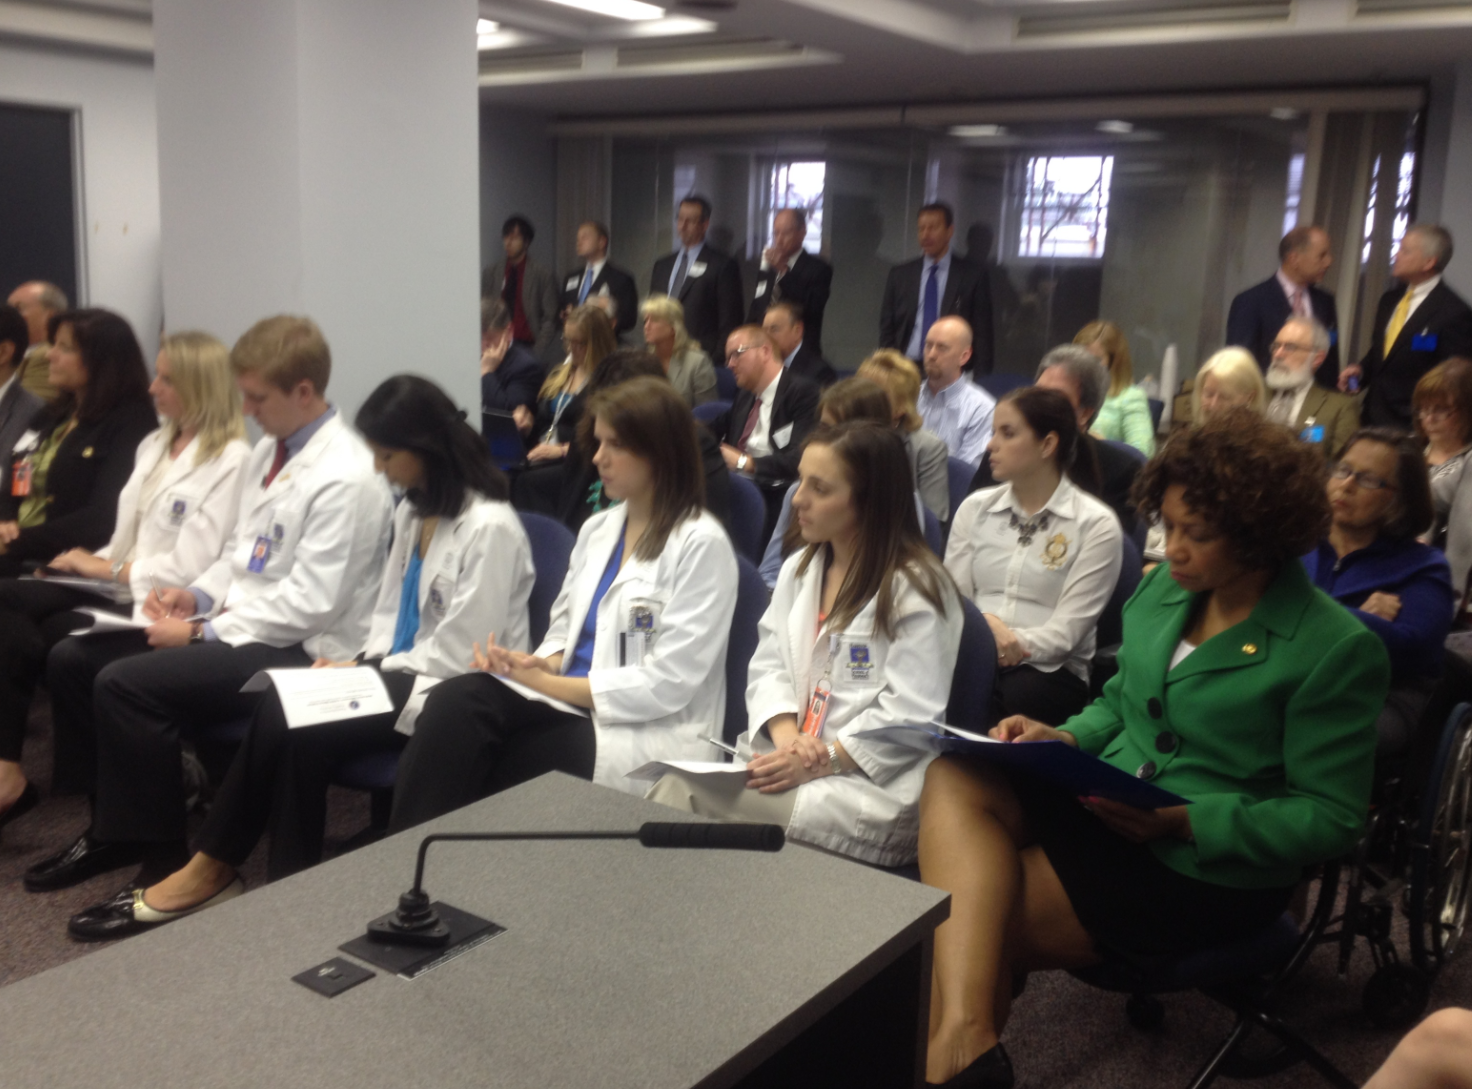 Audience during the Medication Adherence Panel presentation